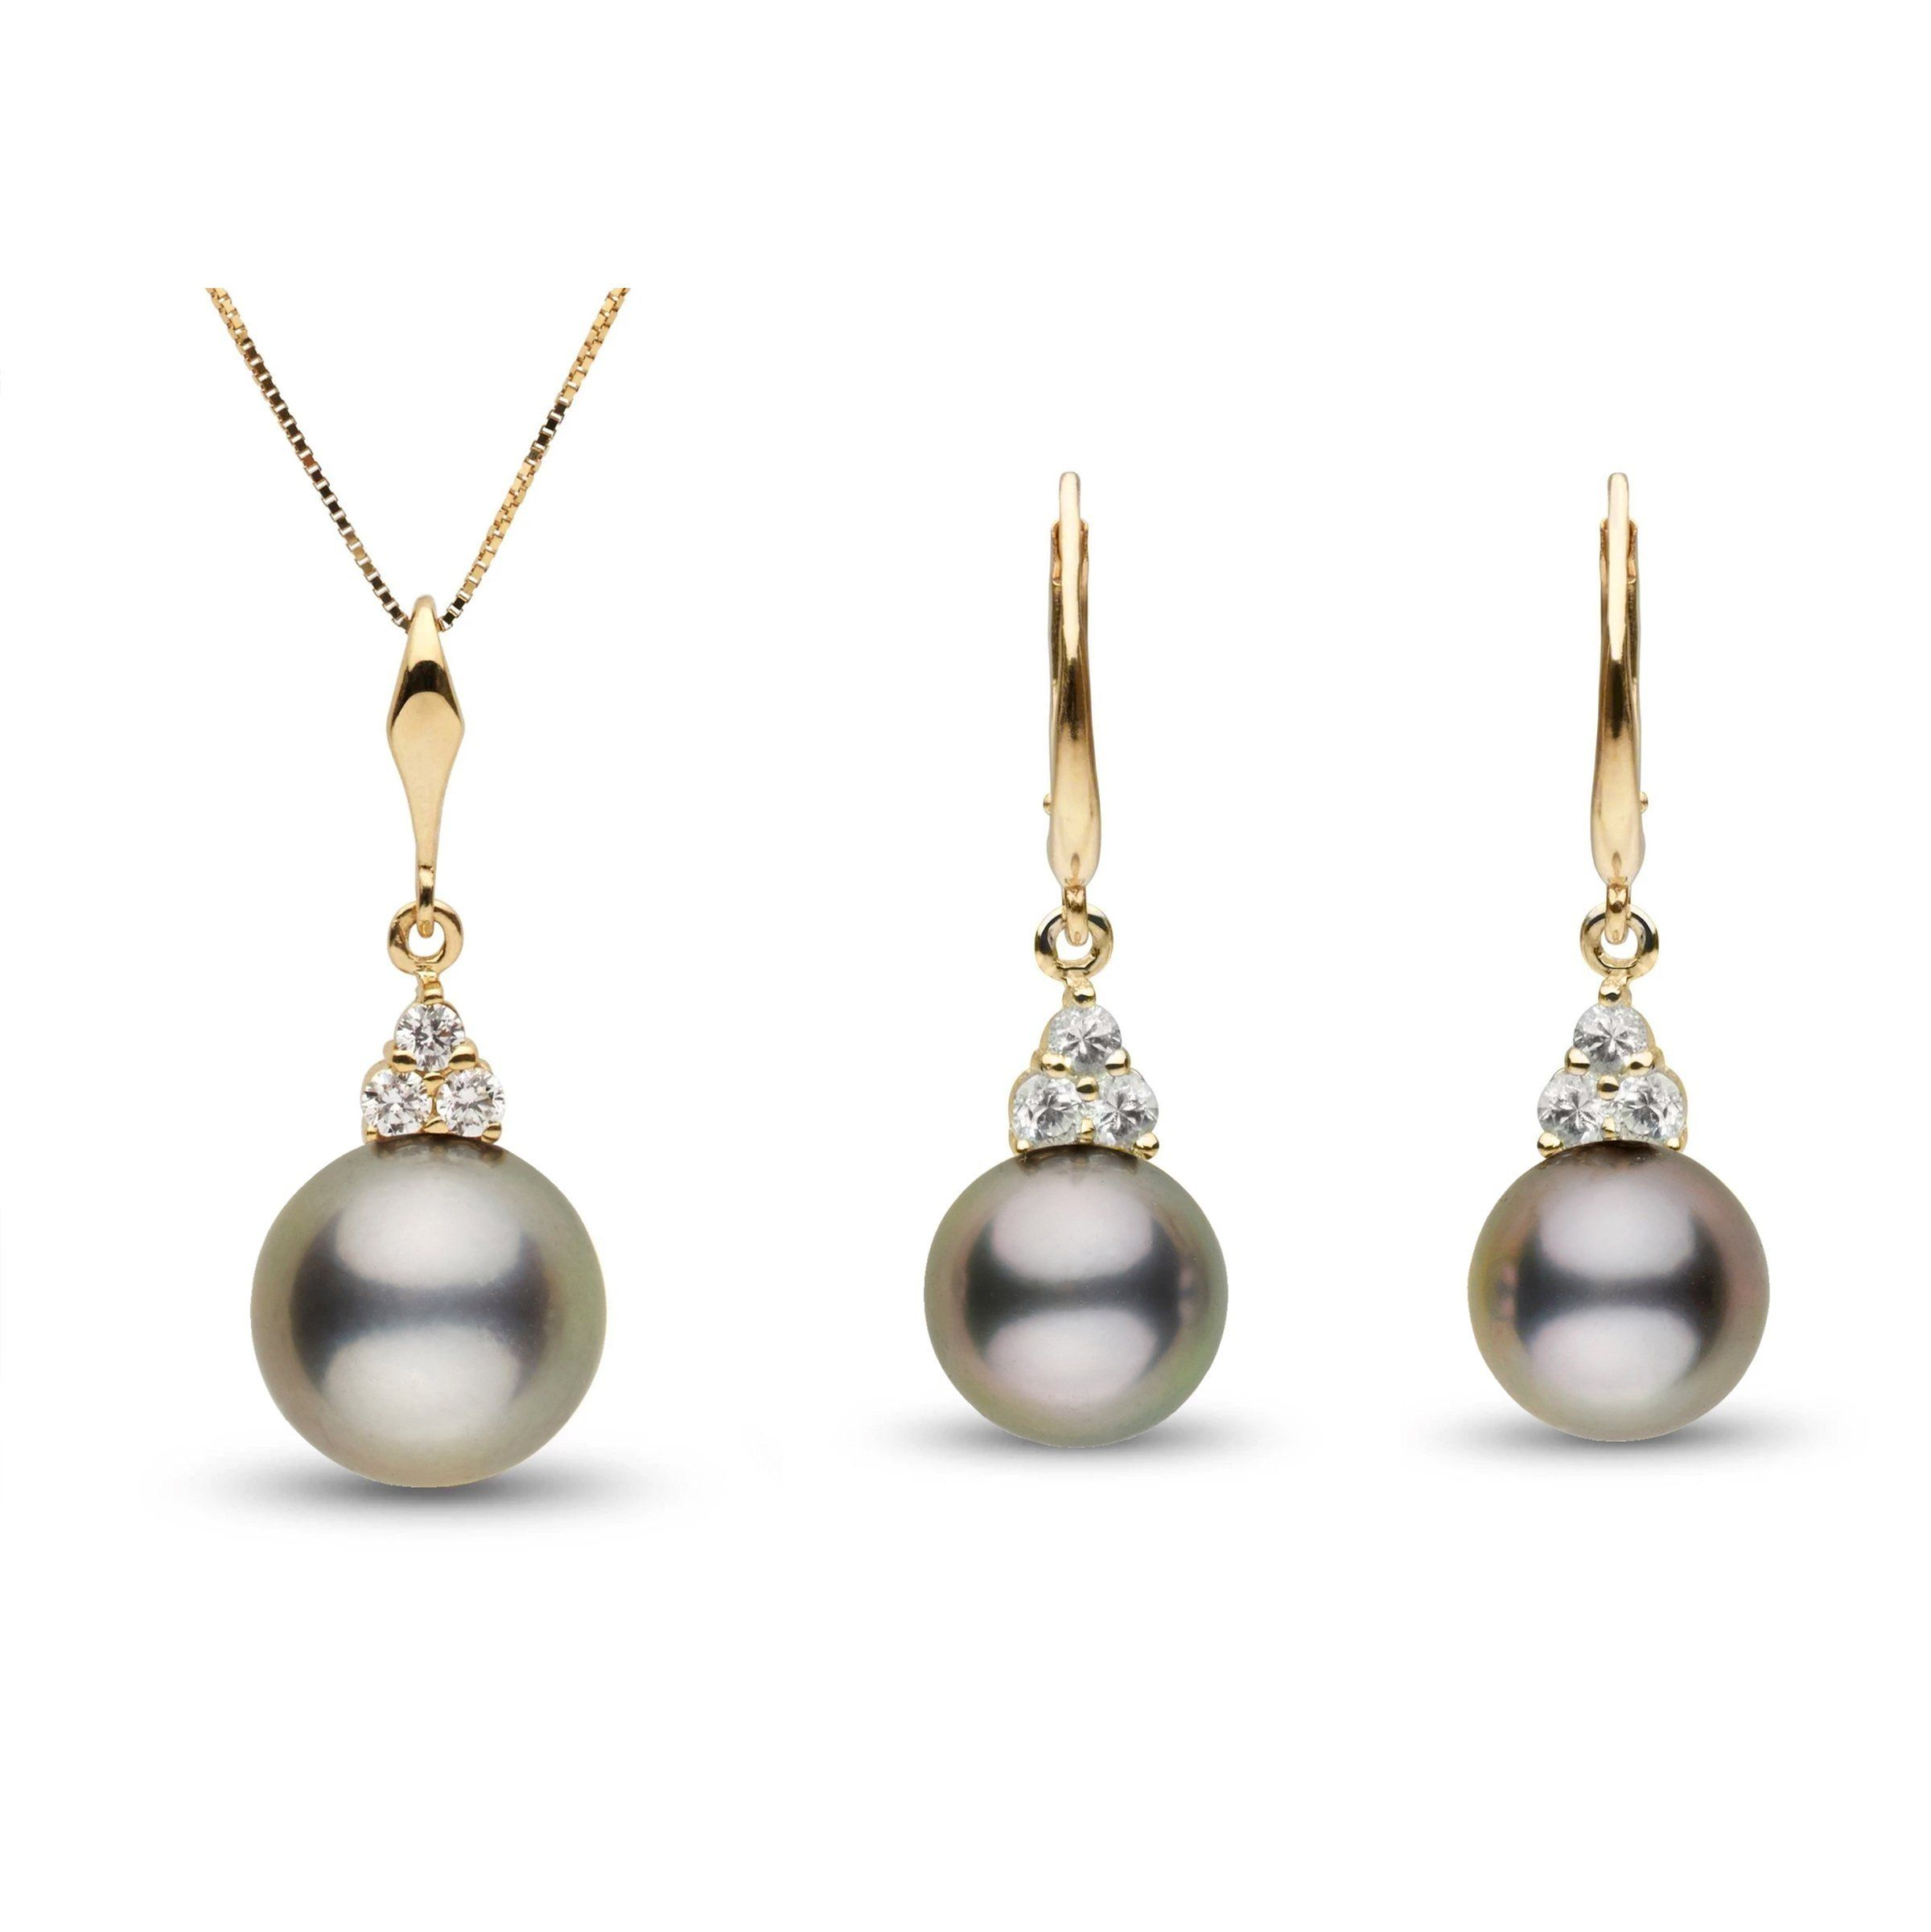 Always Collection 10.0-11.0 mm Tahitian Pearl and Diamonds Set